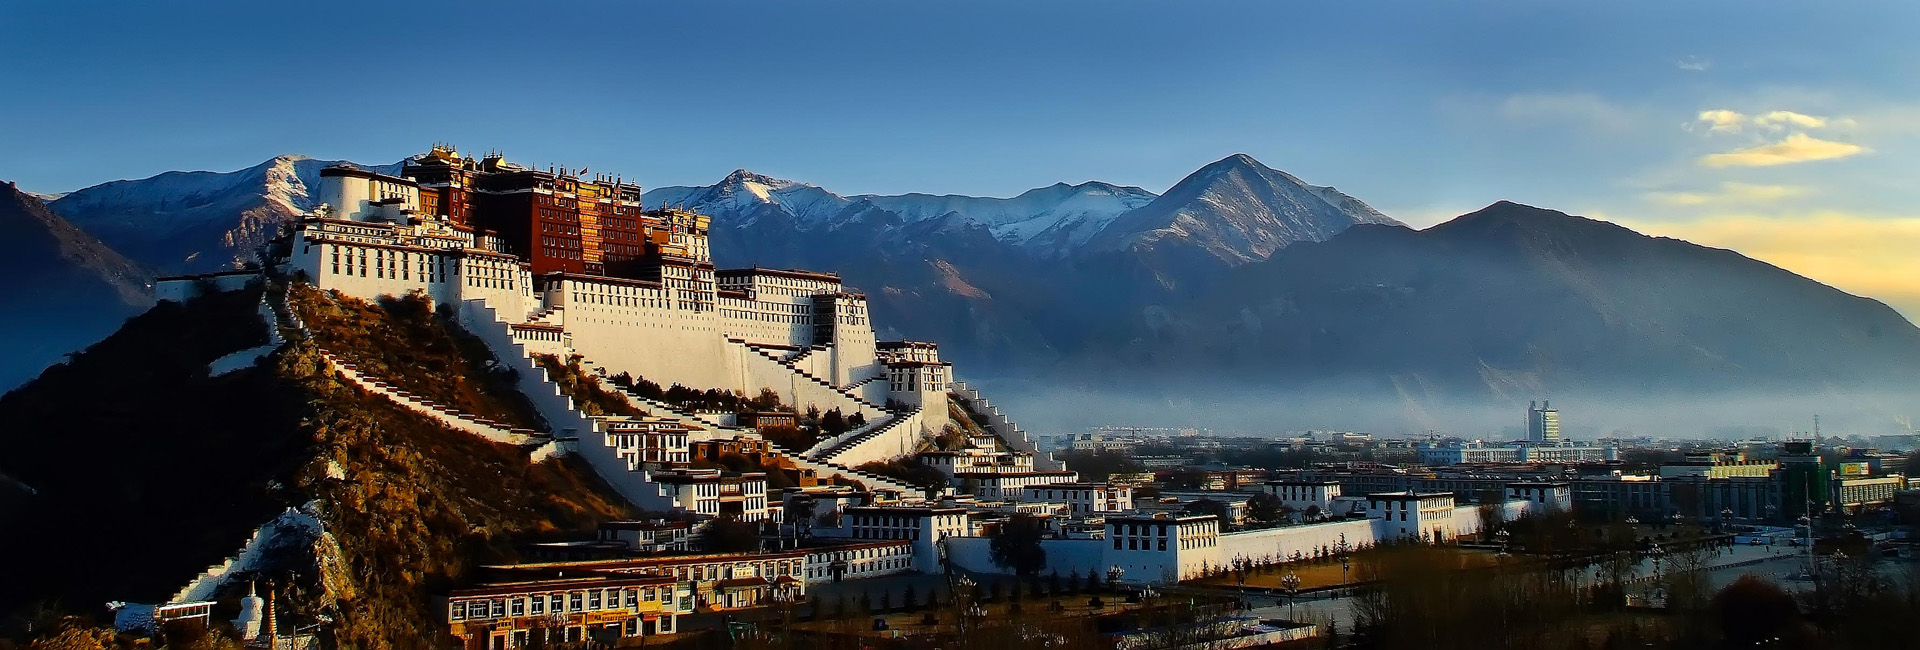 Lhasa Tour 5 nights 6 days